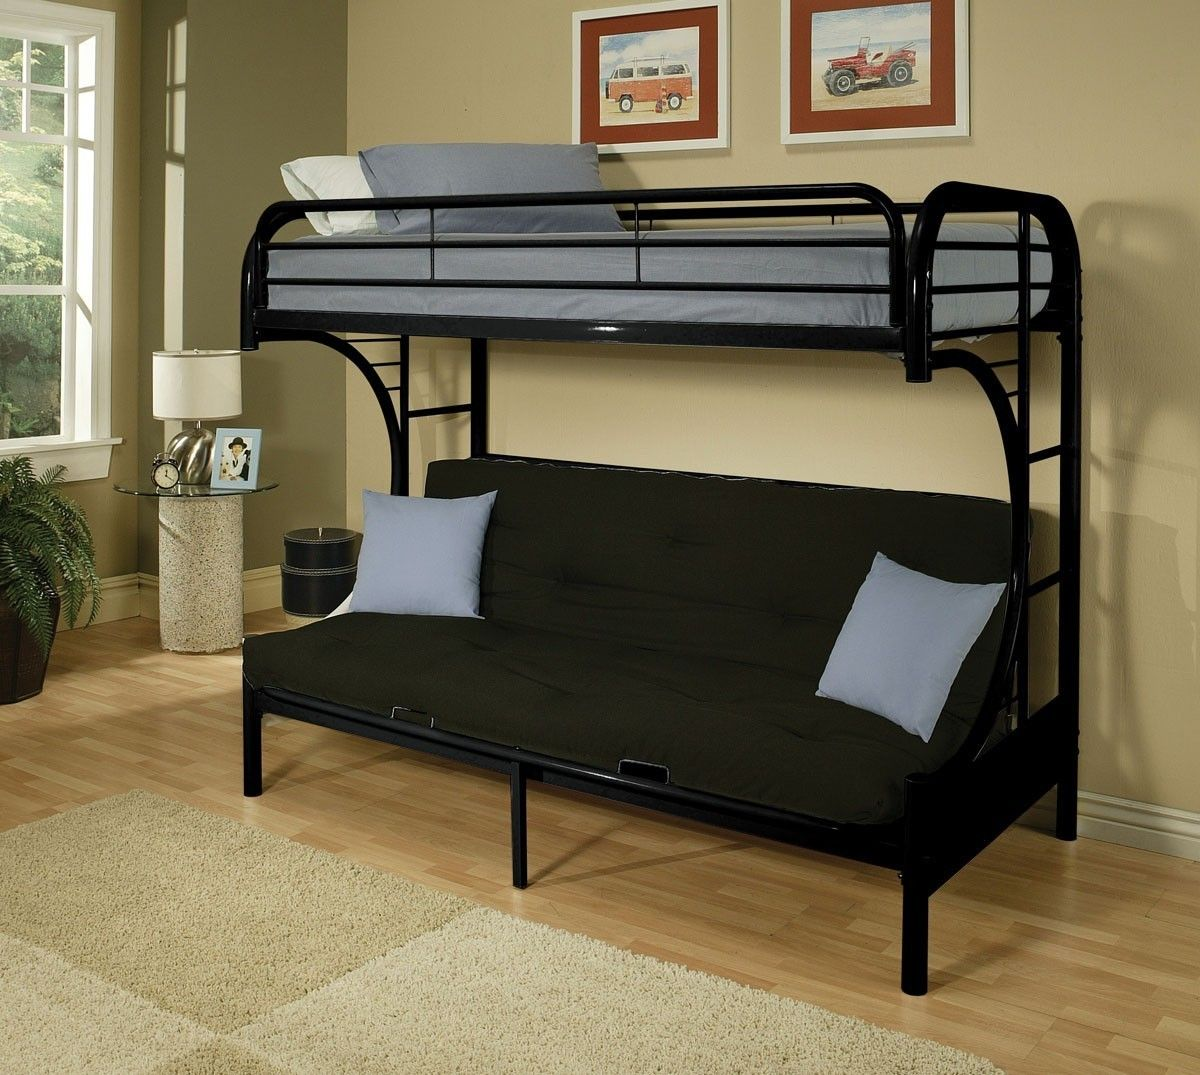 bunk bed with futon bottom bunk bed with futon bottom   griffin u0027s room   pinterest   bunk bed      rh   pinterest